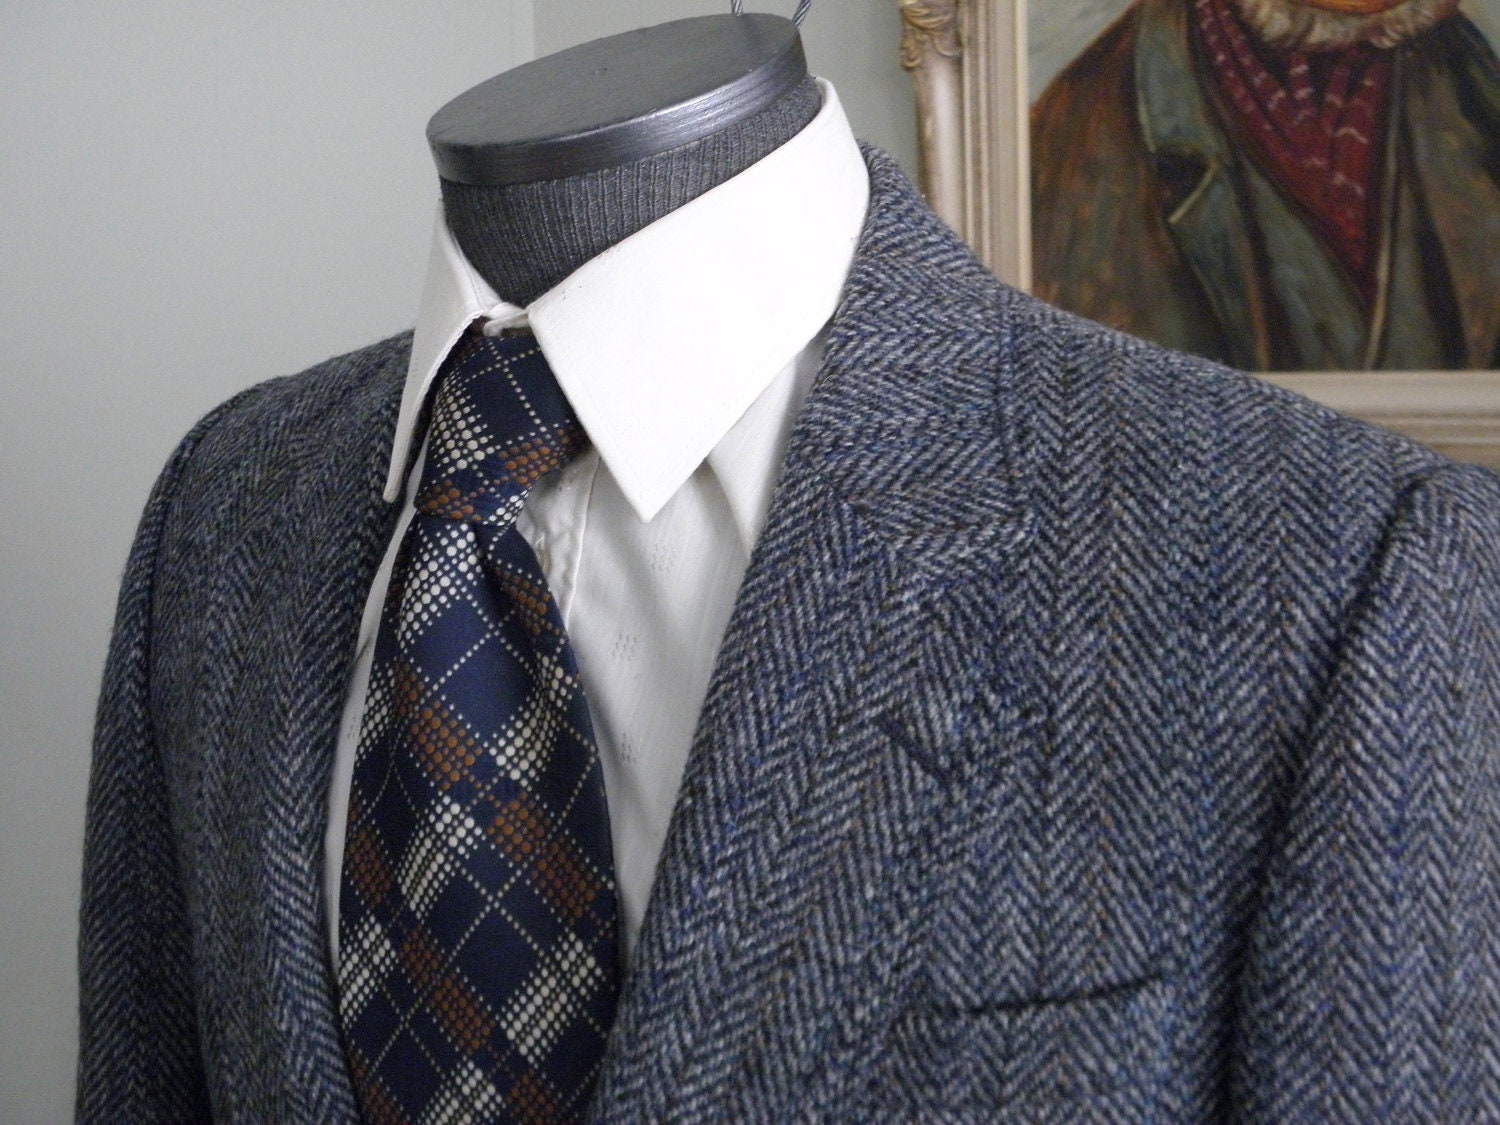 Shop for men's mens herringbone sport coat online at Men's Wearhouse. Browse the latest mens herringbone sport coat styles & selection from truexfilepv.cf, the leader in men's apparel. Sport Coats top menu, to open submenu links, press the up or down arrows on your keyboard. For moving to next top menu item, press tab key.